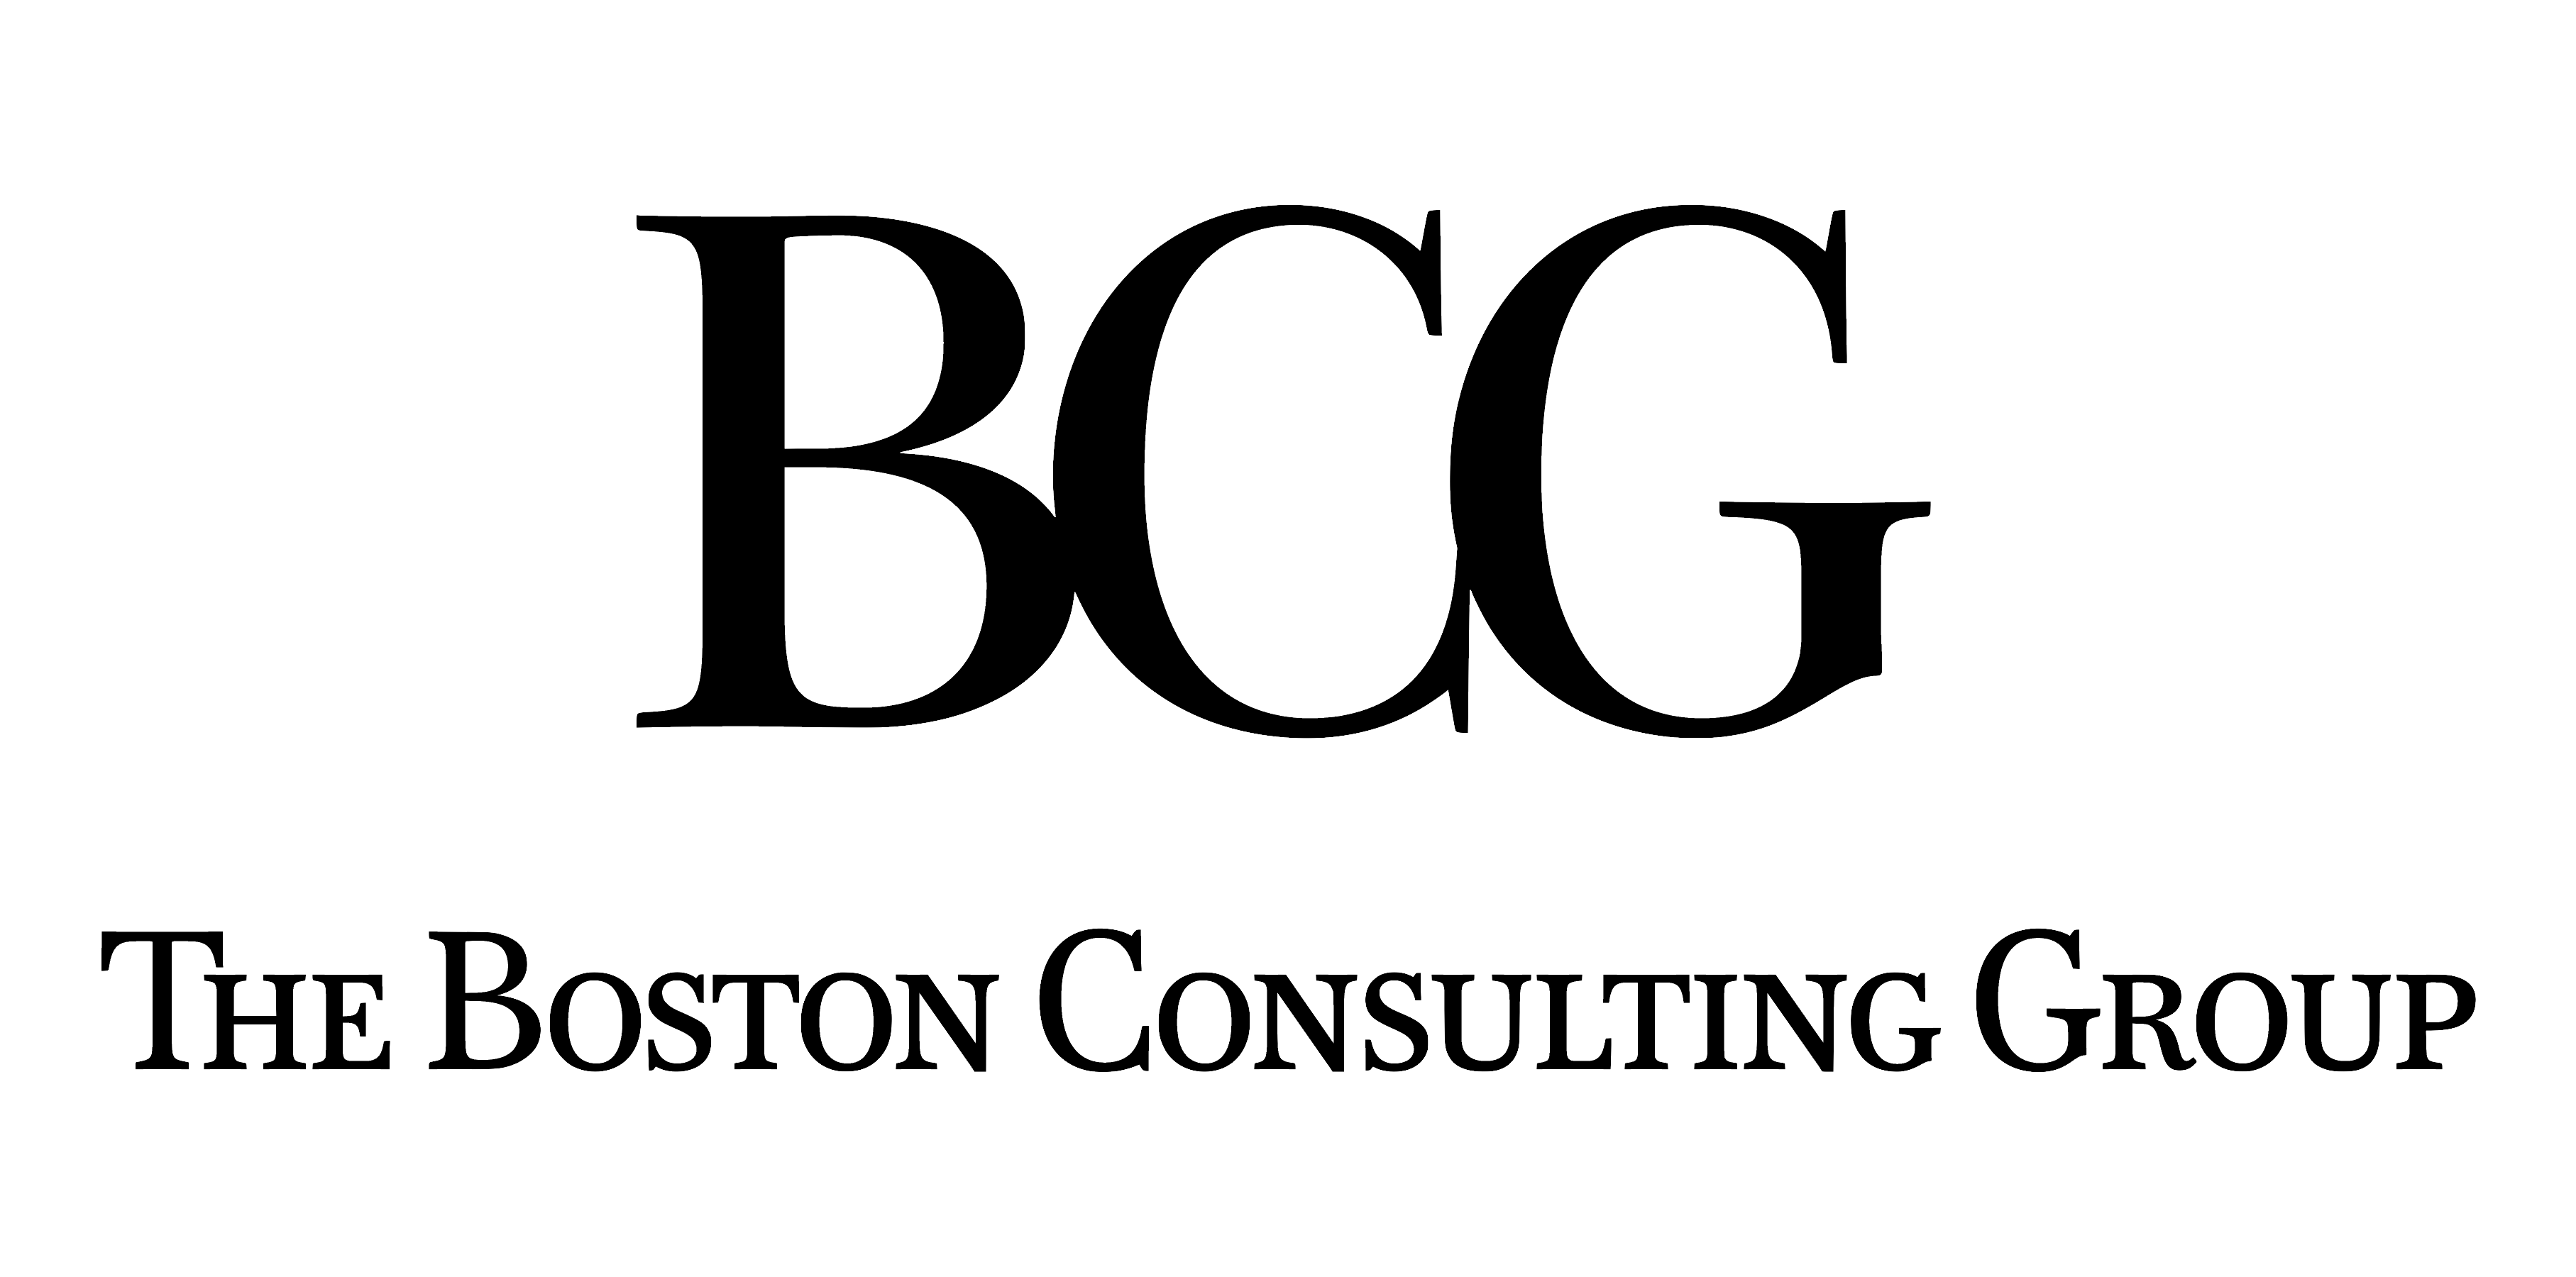 Client - The Boston Consulting Group - Logo black